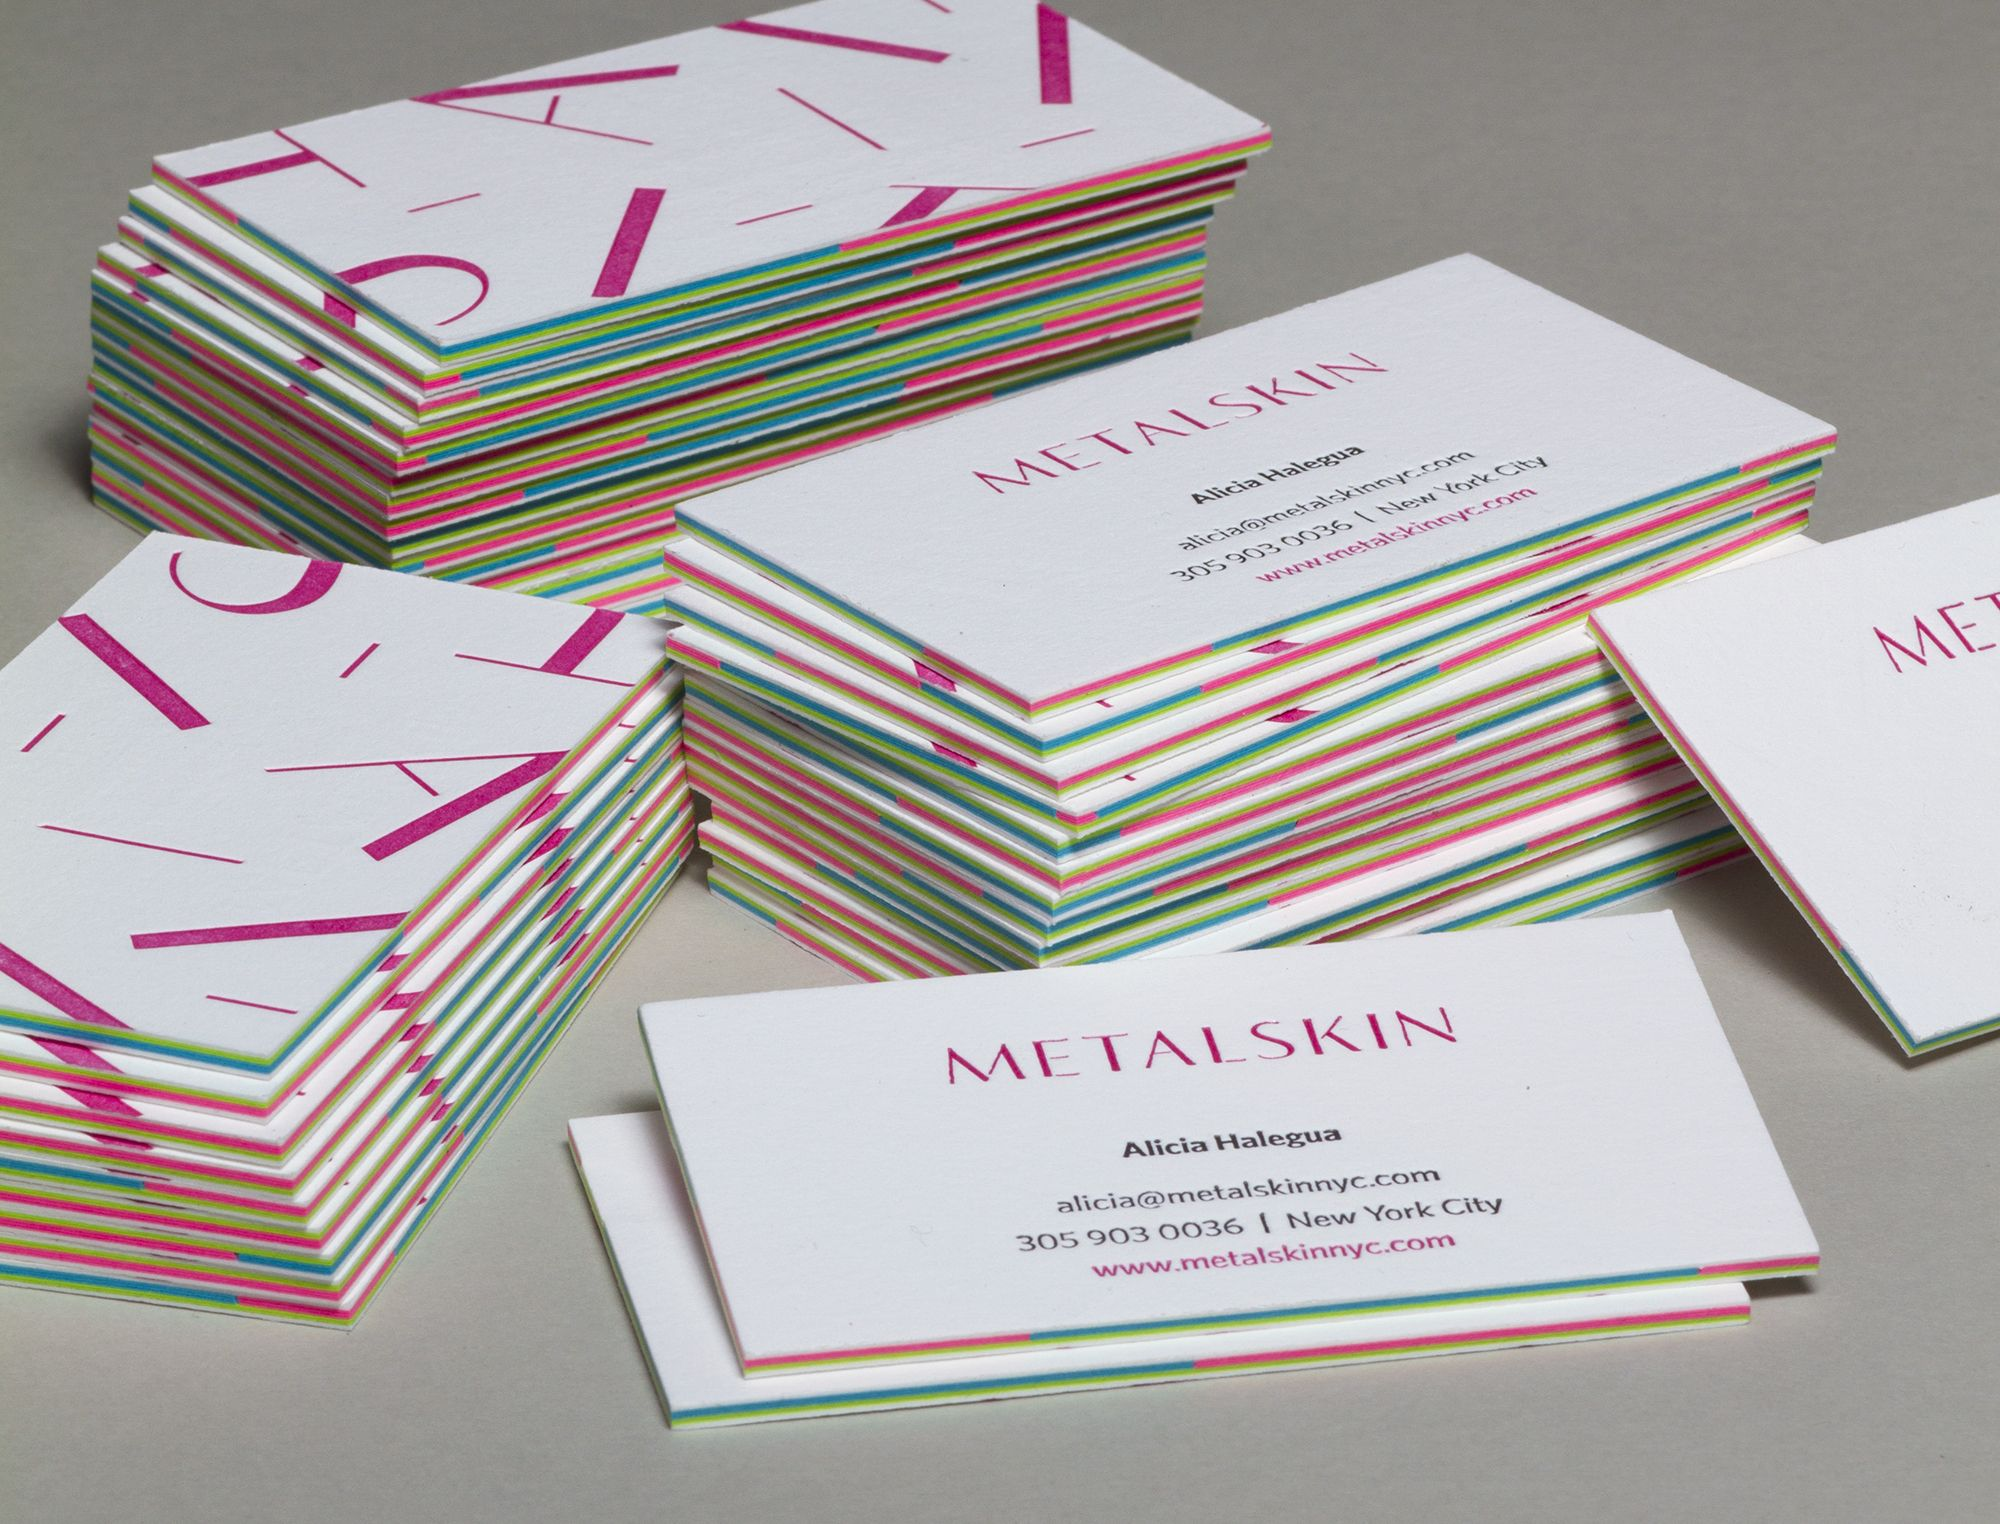 Letterpressed Layered Business Cards. These Letterpress business ...